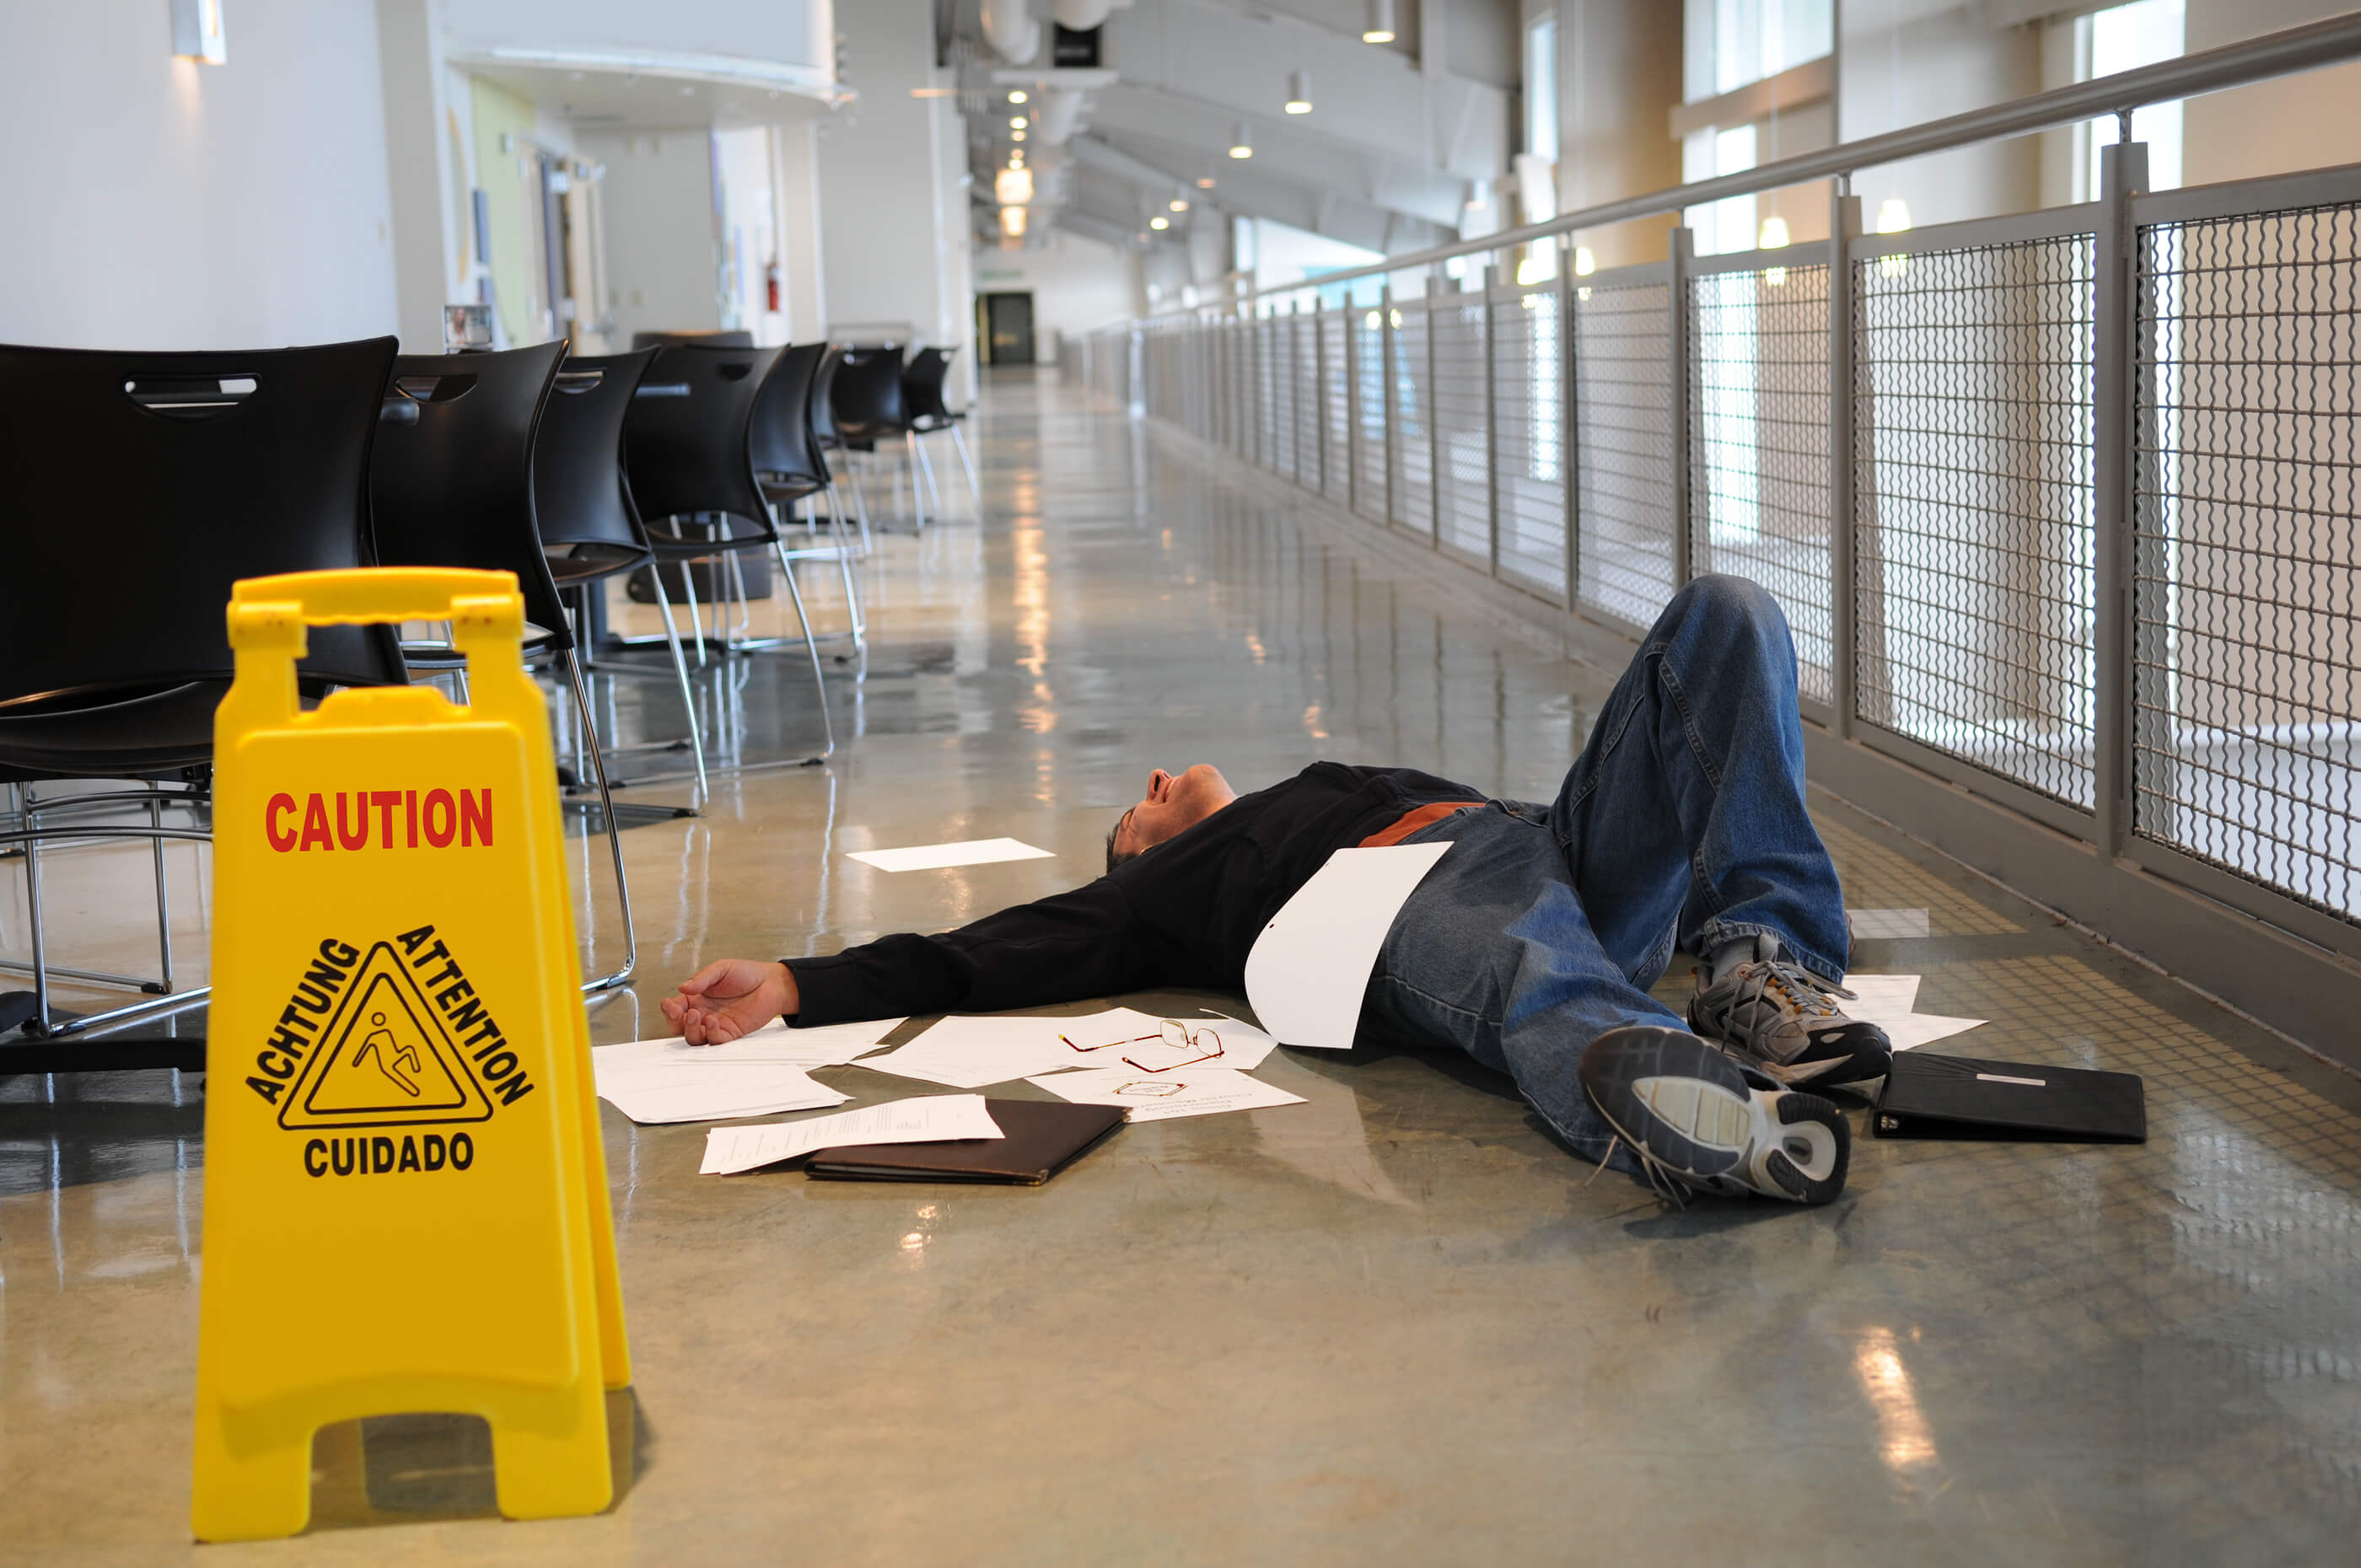 Man-Fallen-On-Wet-Floor-premises-liability